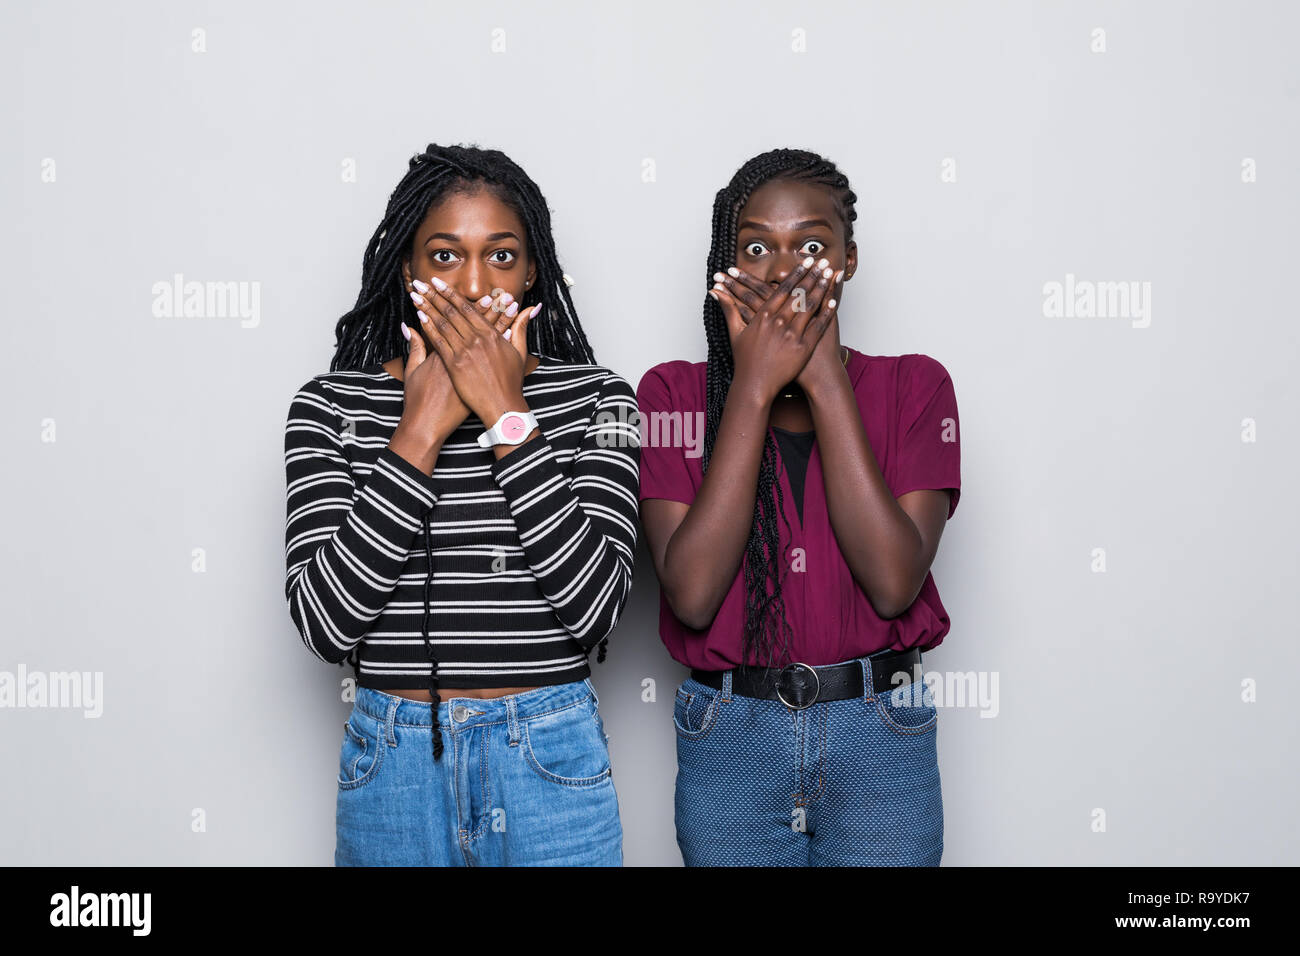 Waist up shot of shocked two african women cover mouthes with both hands, try be speechless in stressful situation isolated over gray background. - Stock Image